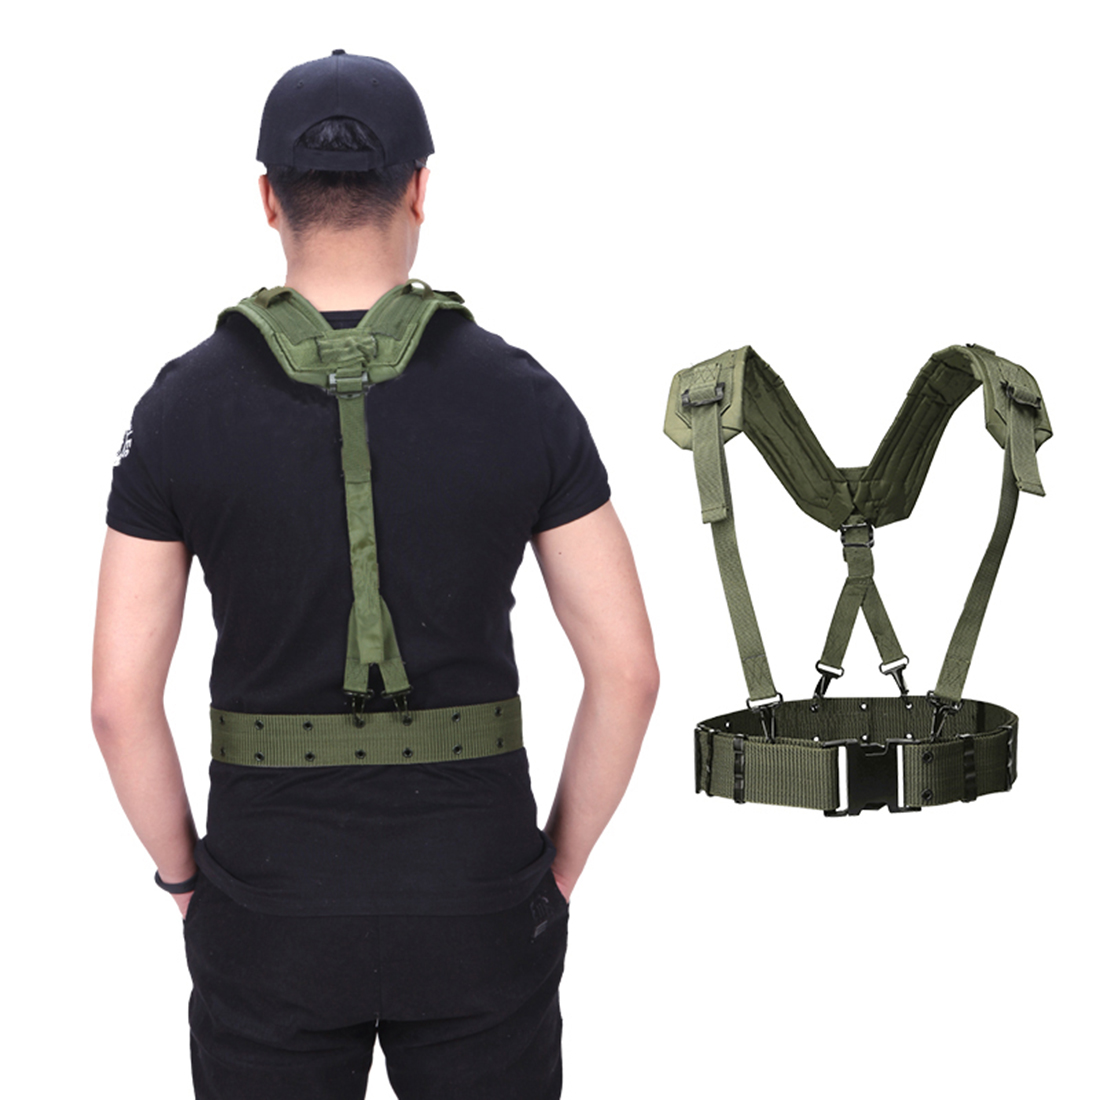 HTB1VCVeaZrrK1RjSspaq6AREXXap - HS Adjustable Tactical Lightweight Waist Belt Harness Set for Outdoor Military Shoulder Waist Protective Band for Adult